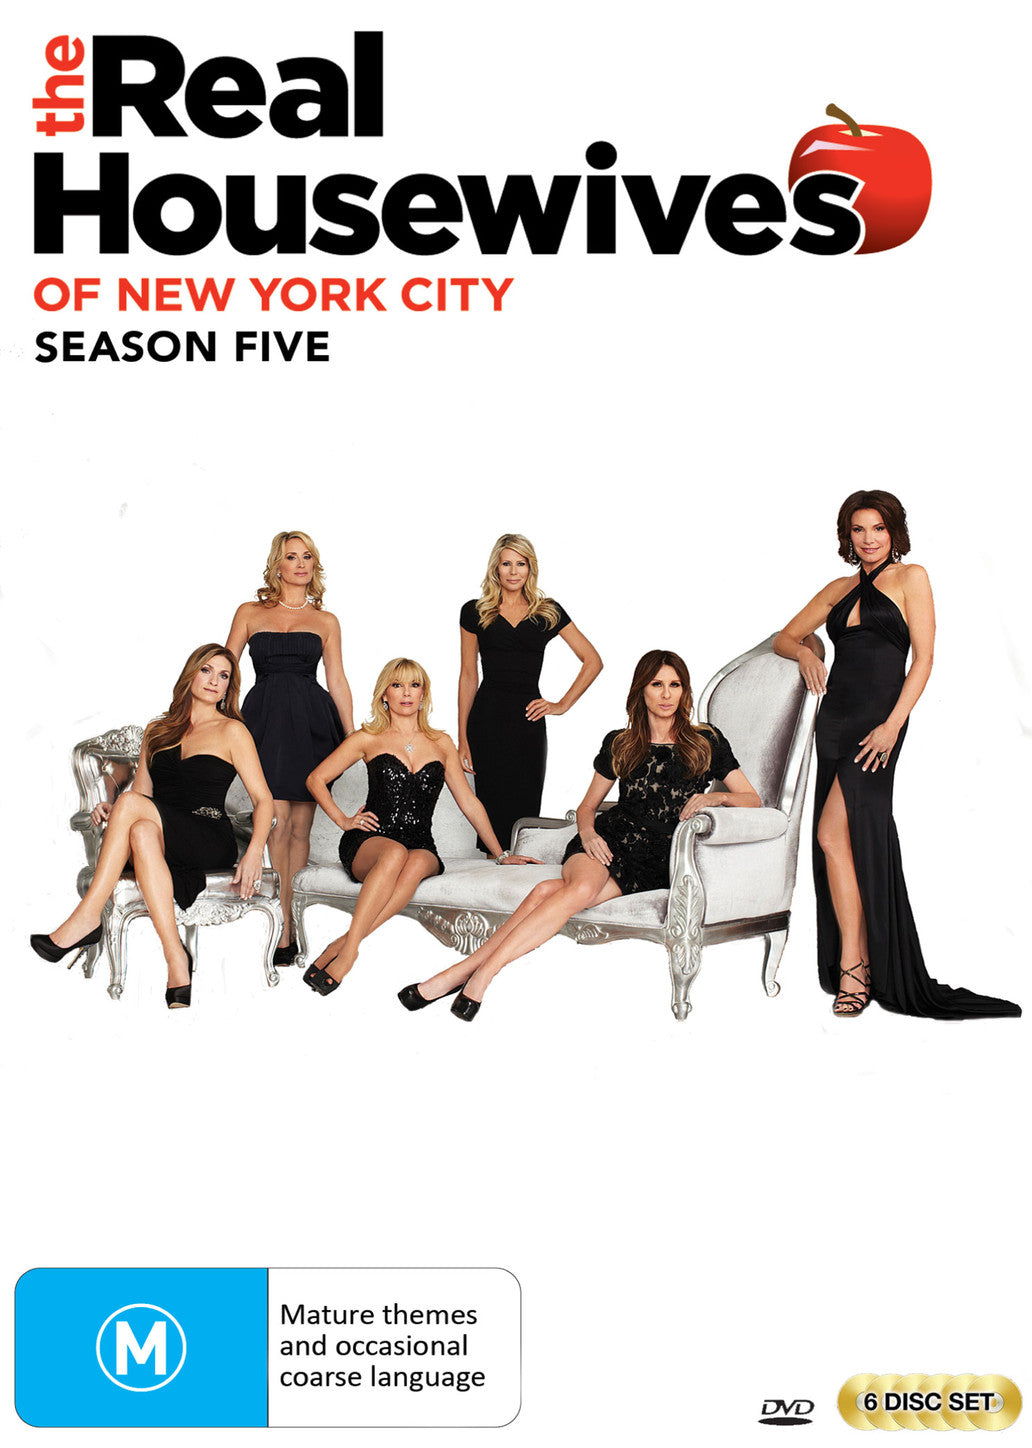 Real Housewives of New York - Season 5 DVD